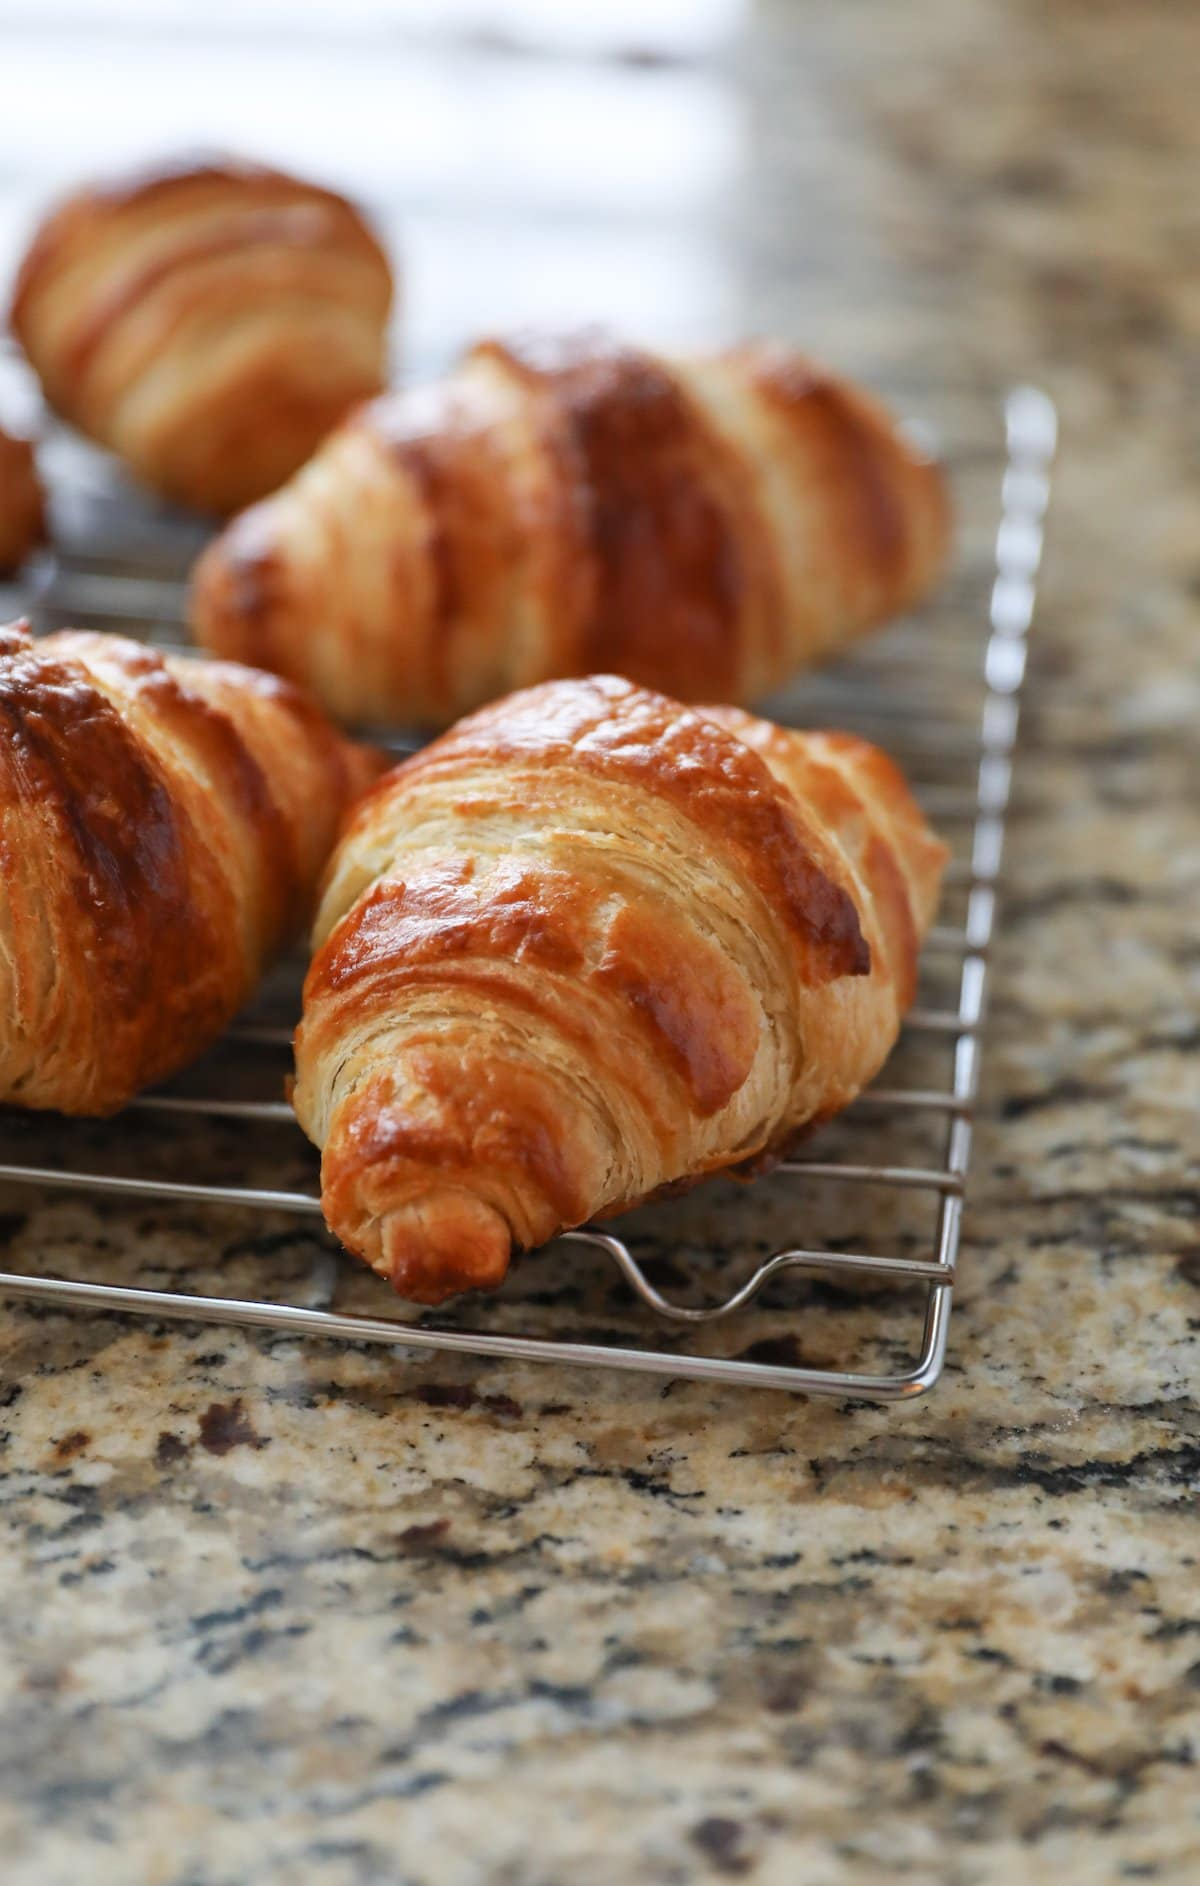 baked croissants on cooling rack